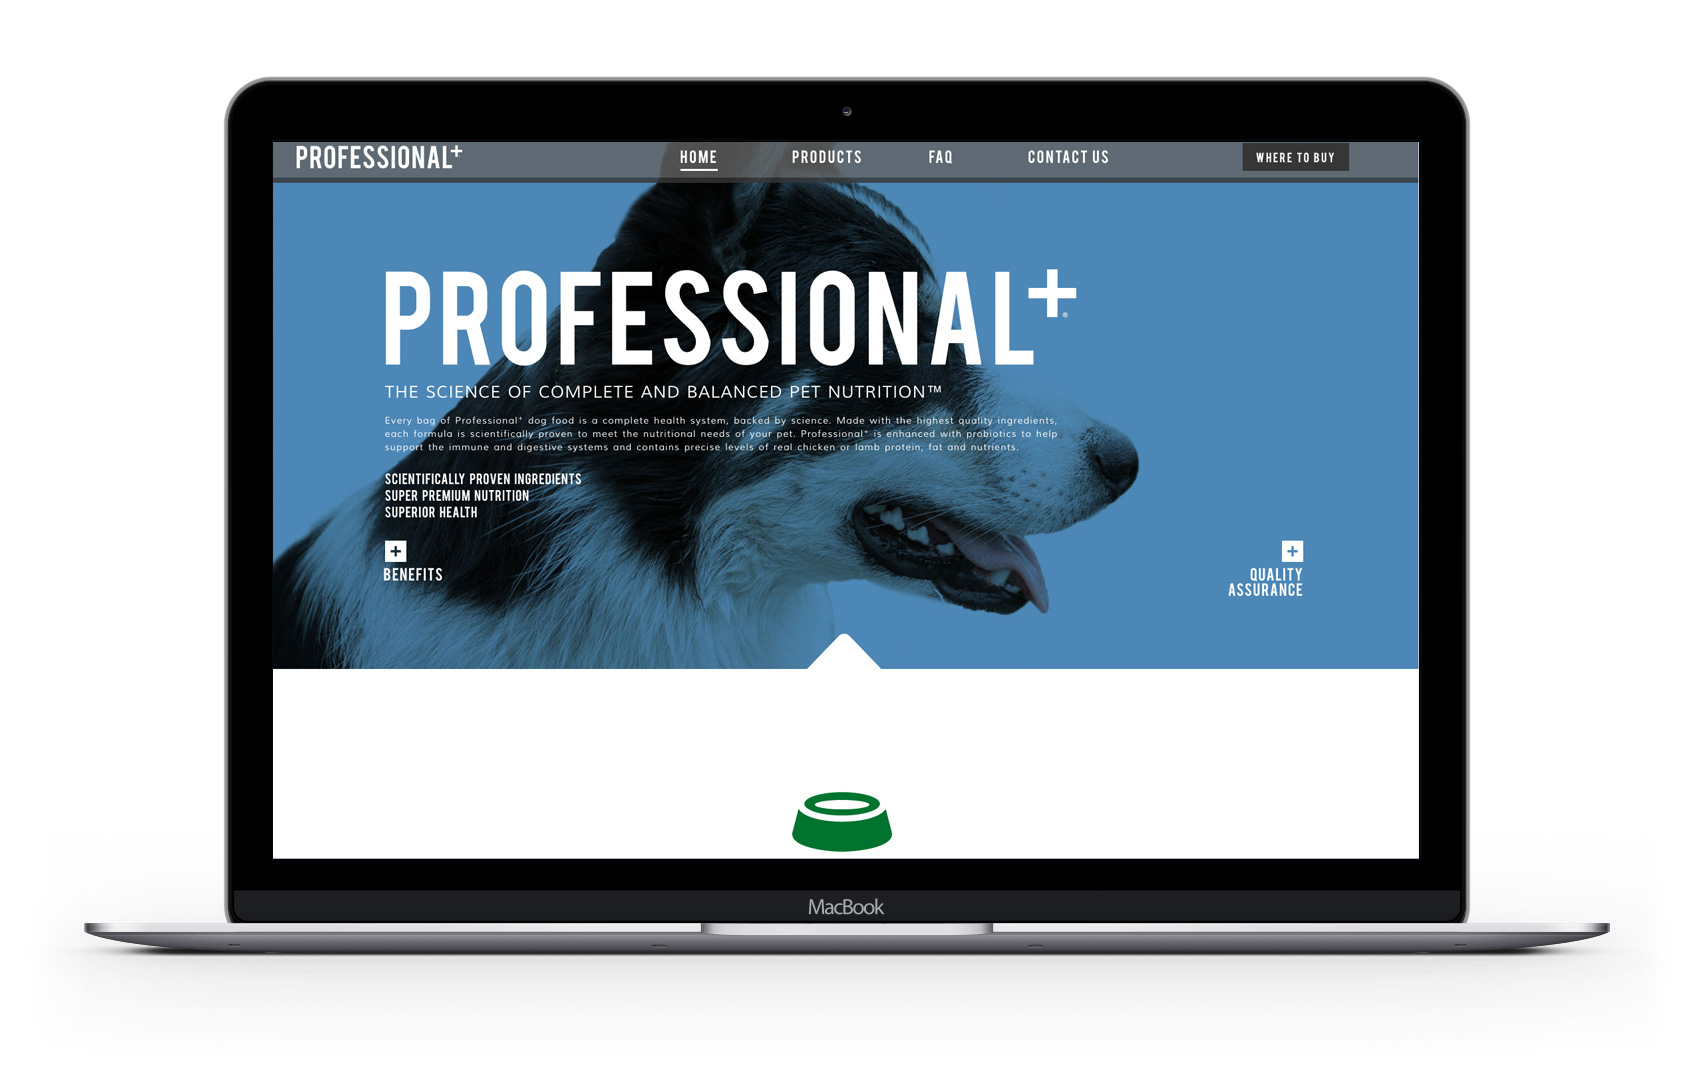 Professional+ Formula for Dogs home page of their website